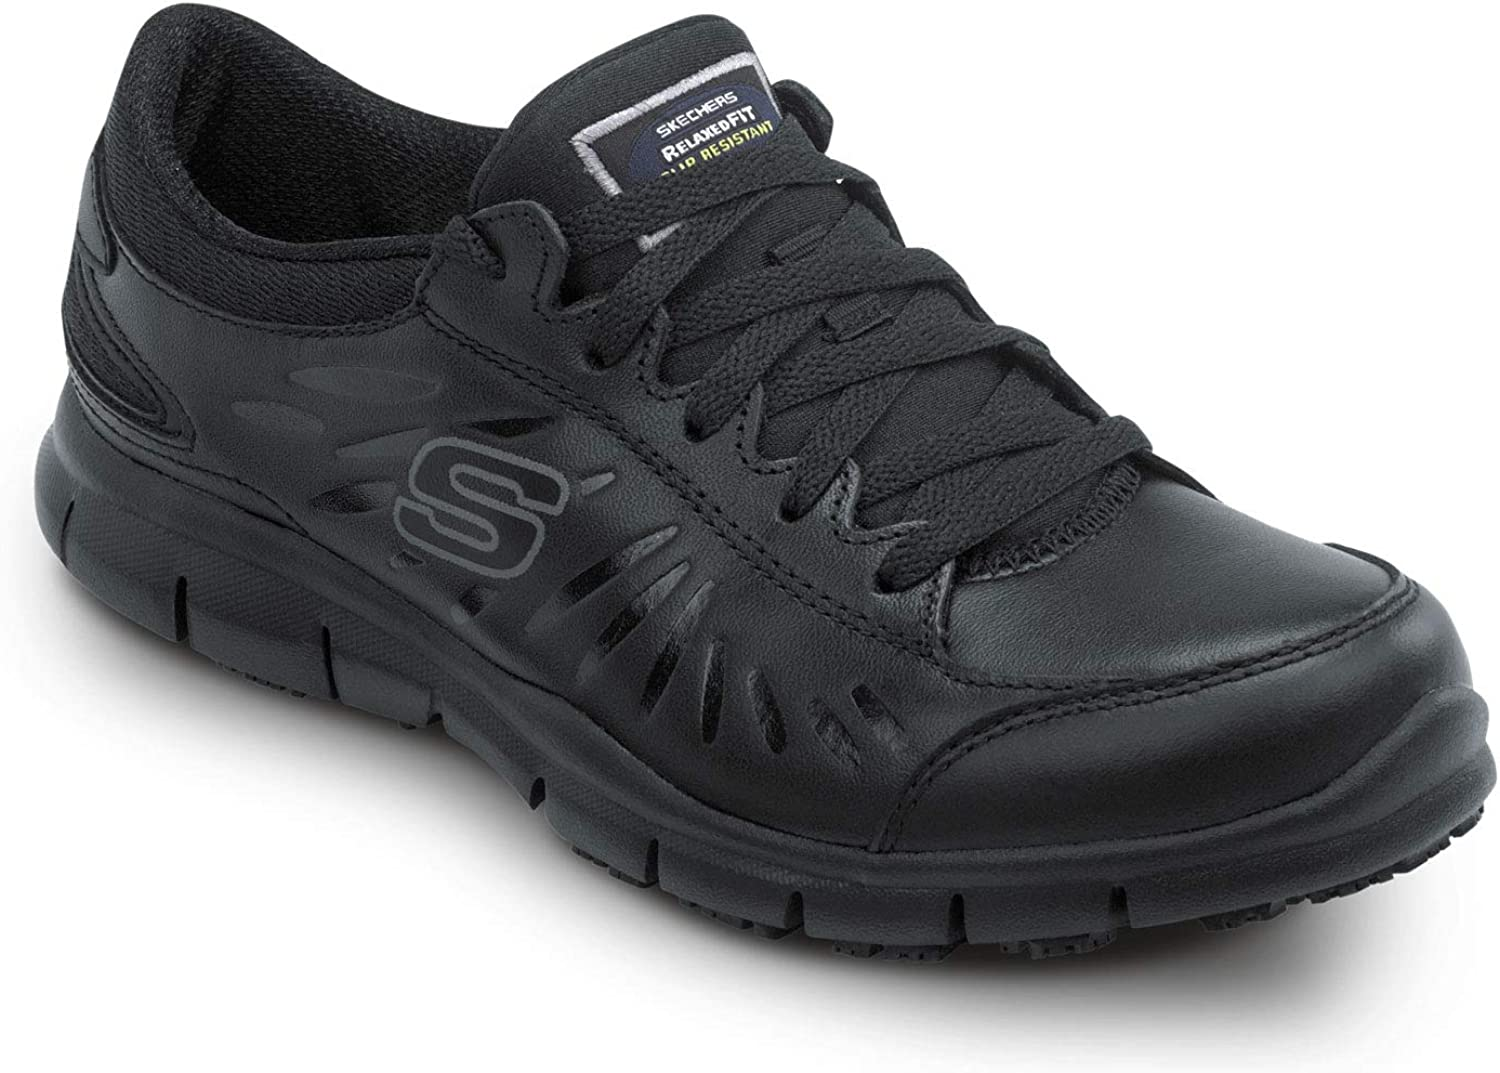 Skechers Work Stacey - Women's Soft Toe, Slip Resistant, Low Athletic : Clothing, Shoes & Jewelry